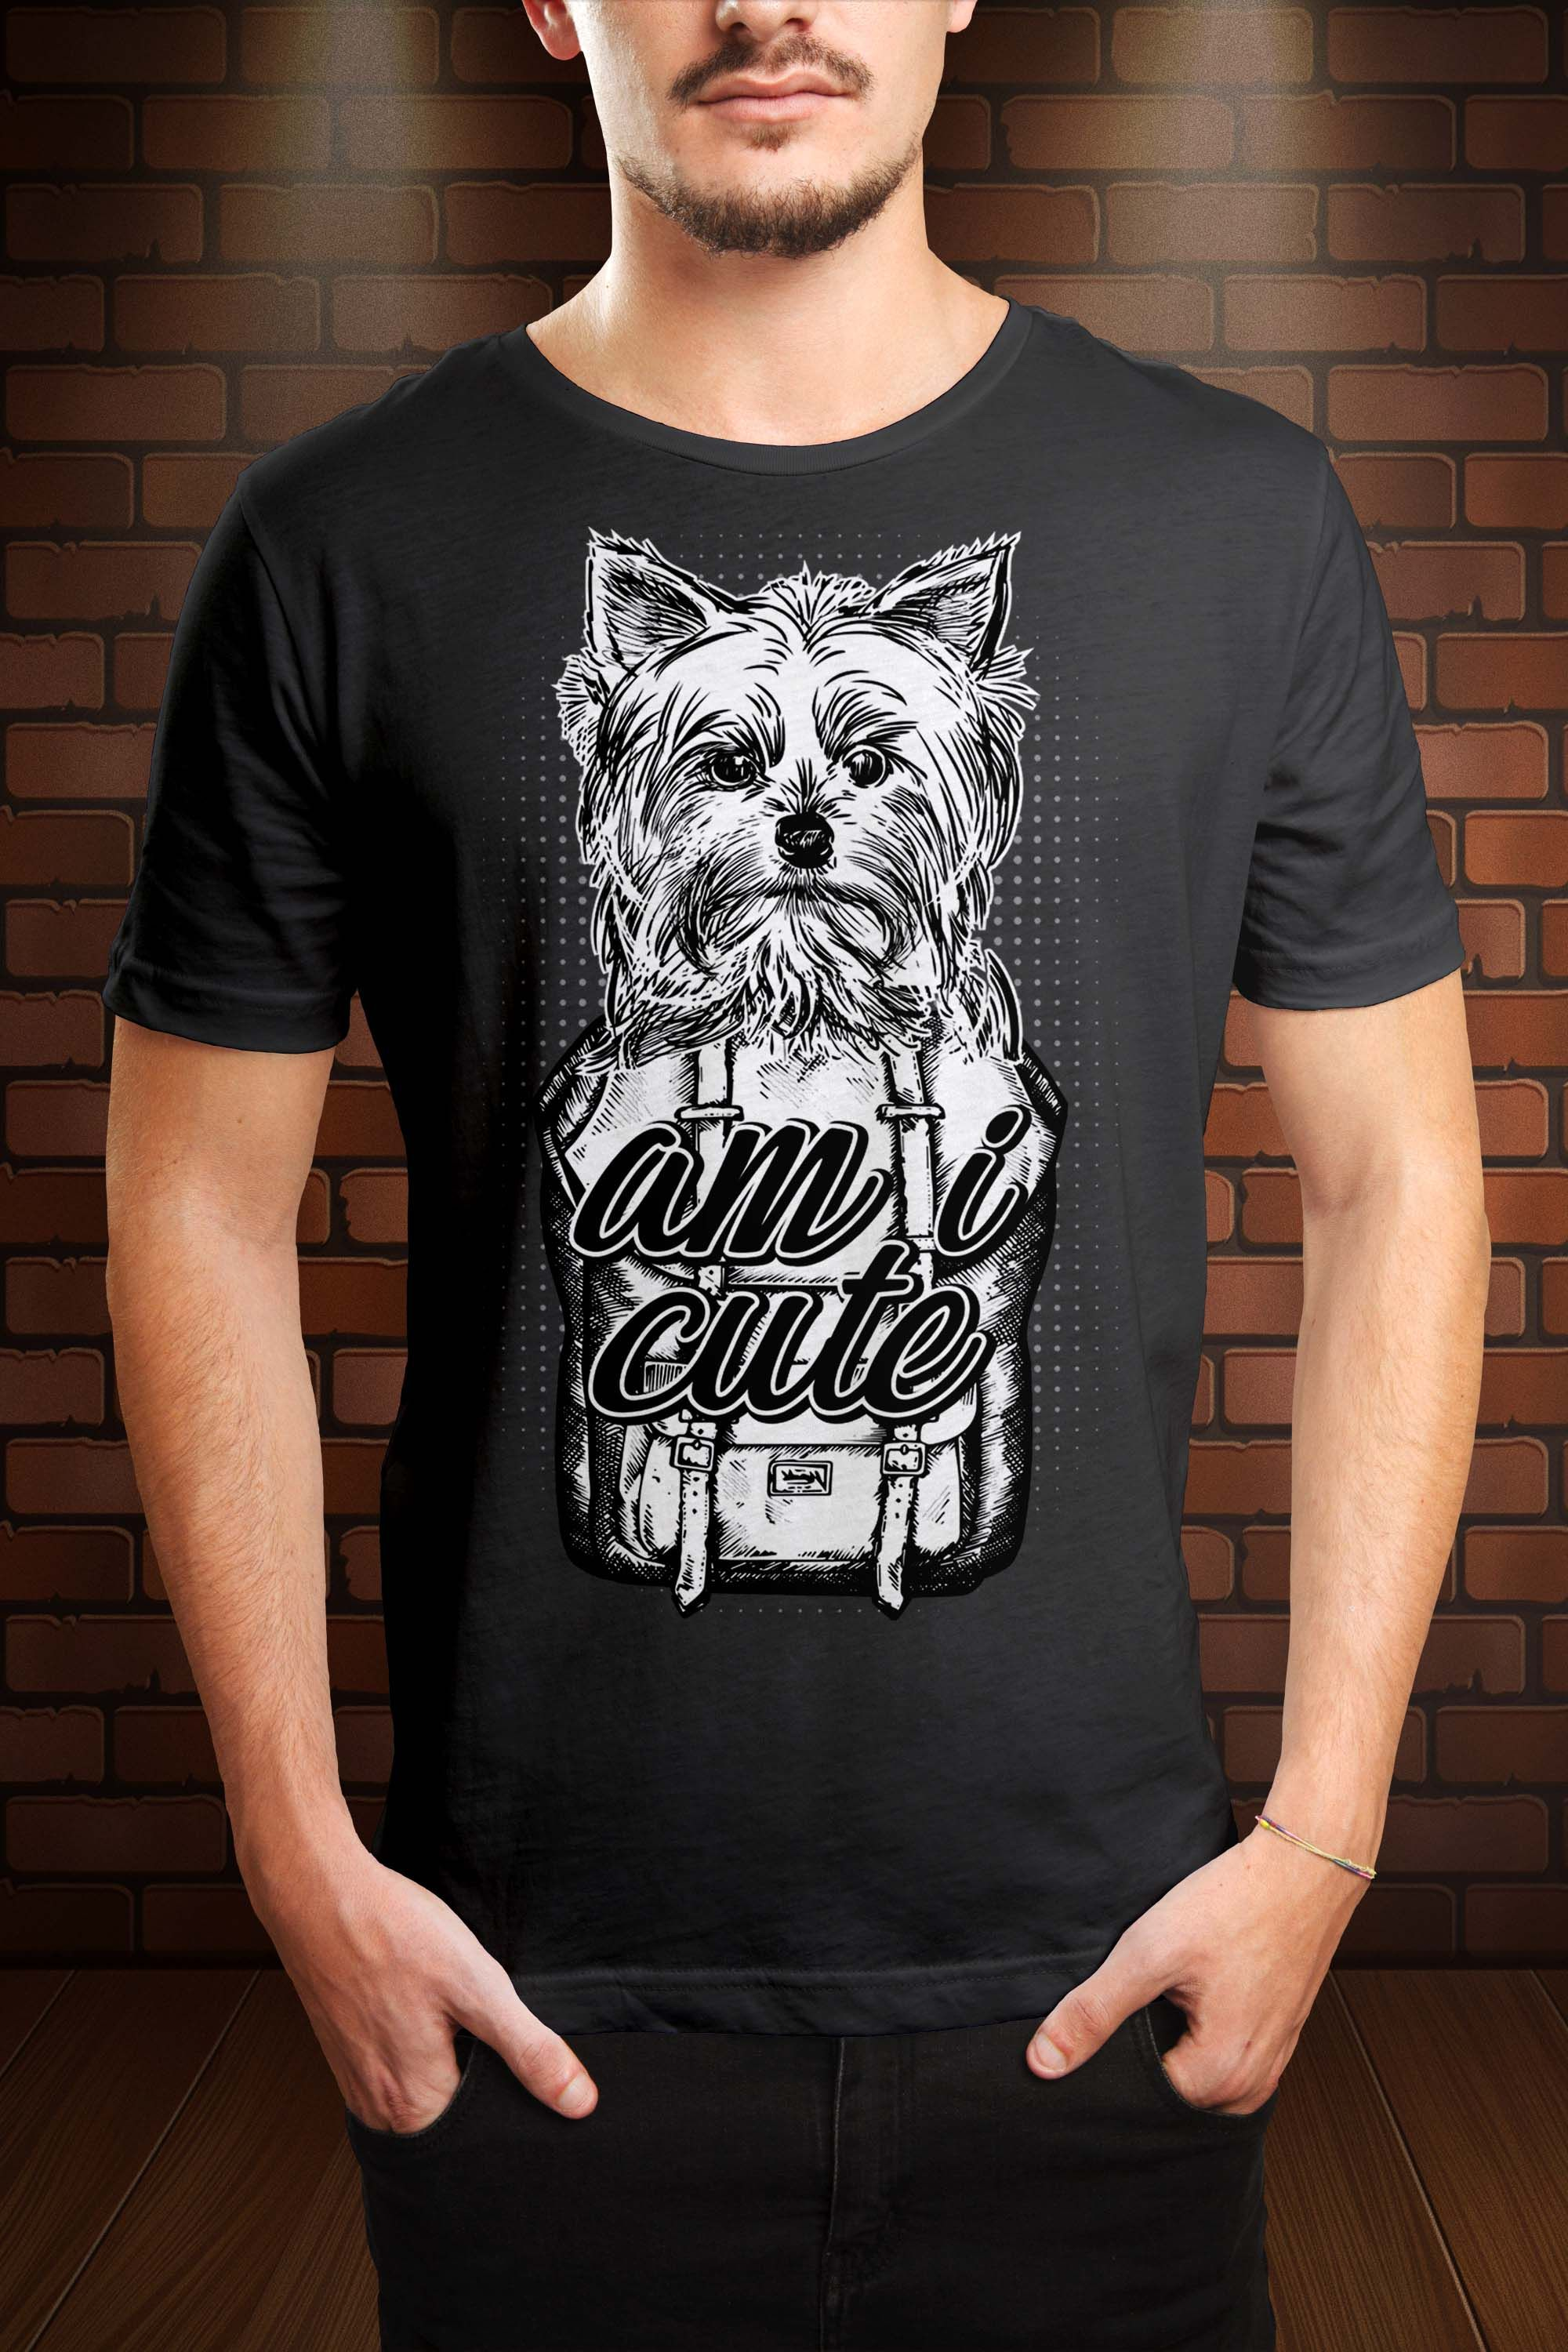 Dog Funny Shirt For Women D11 Shirts For Men T Shirts For Men